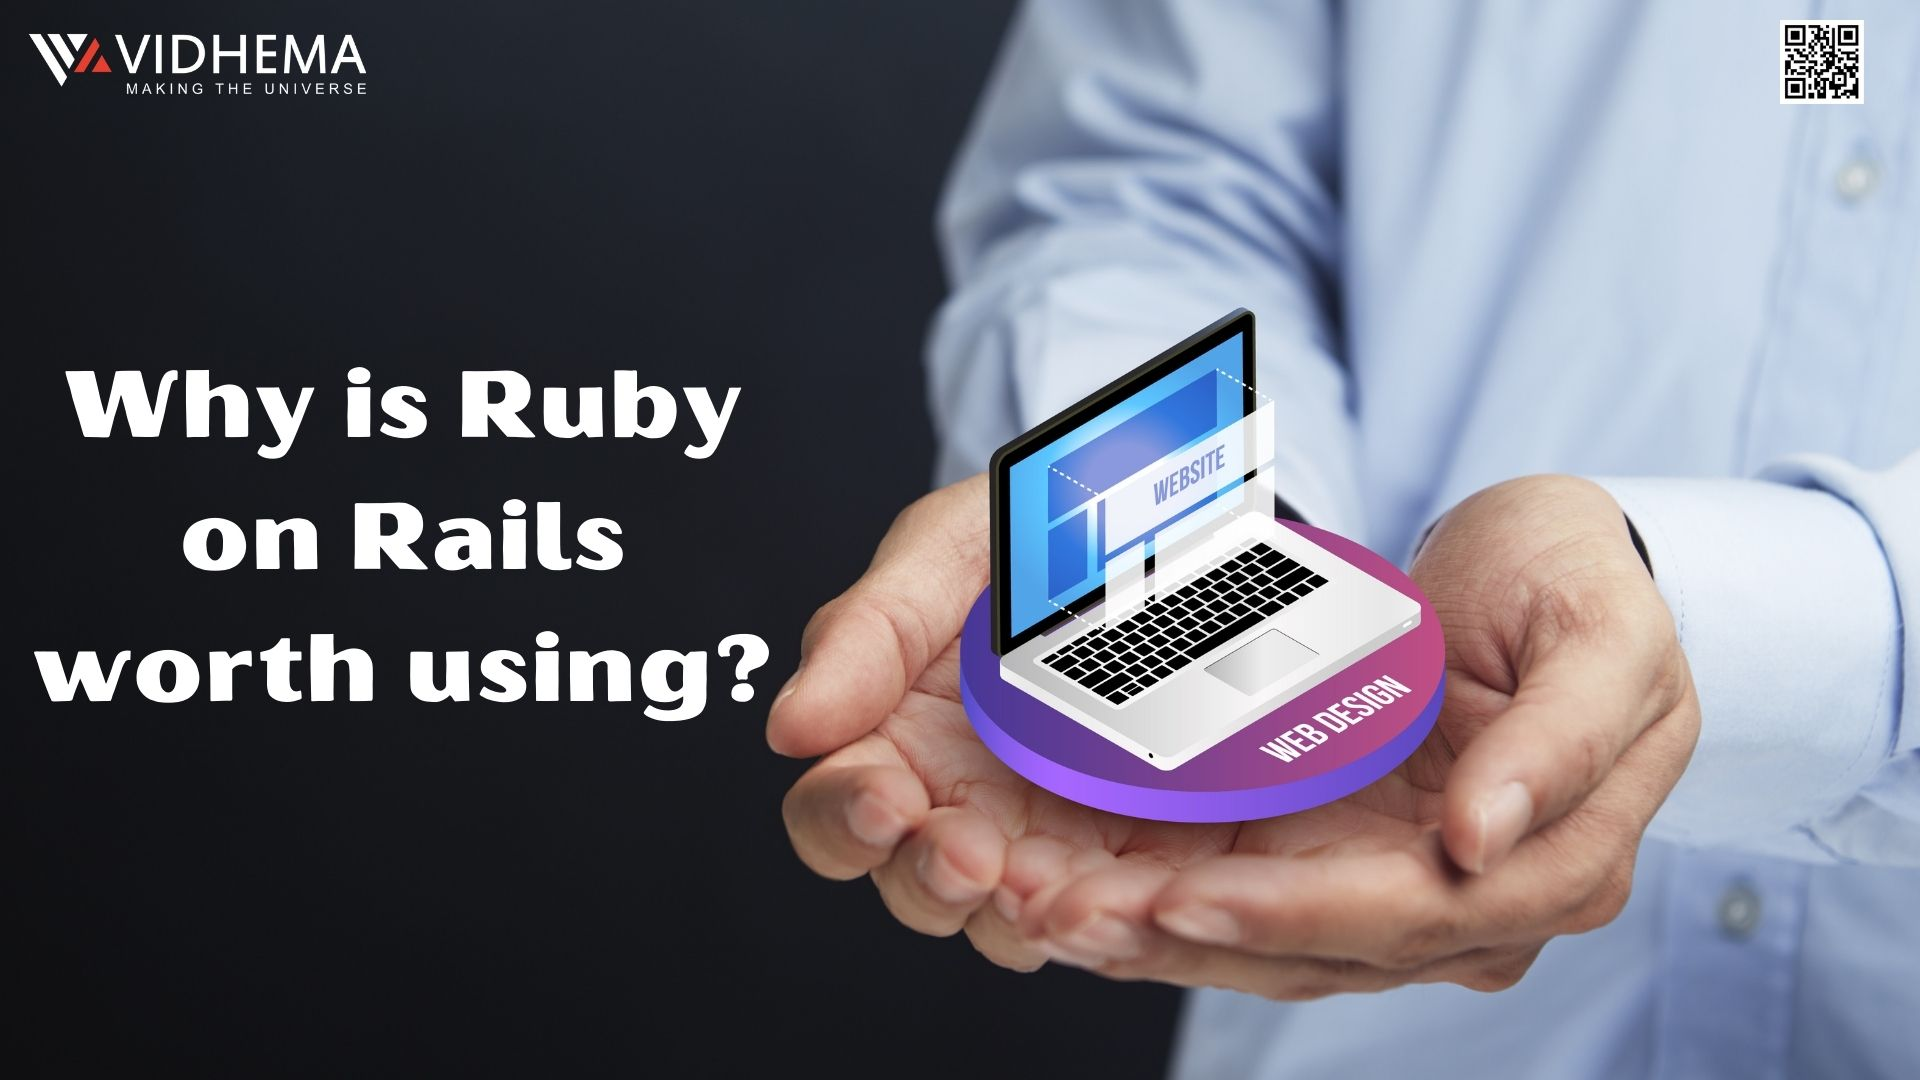 Why is Ruby on Rails worth using?